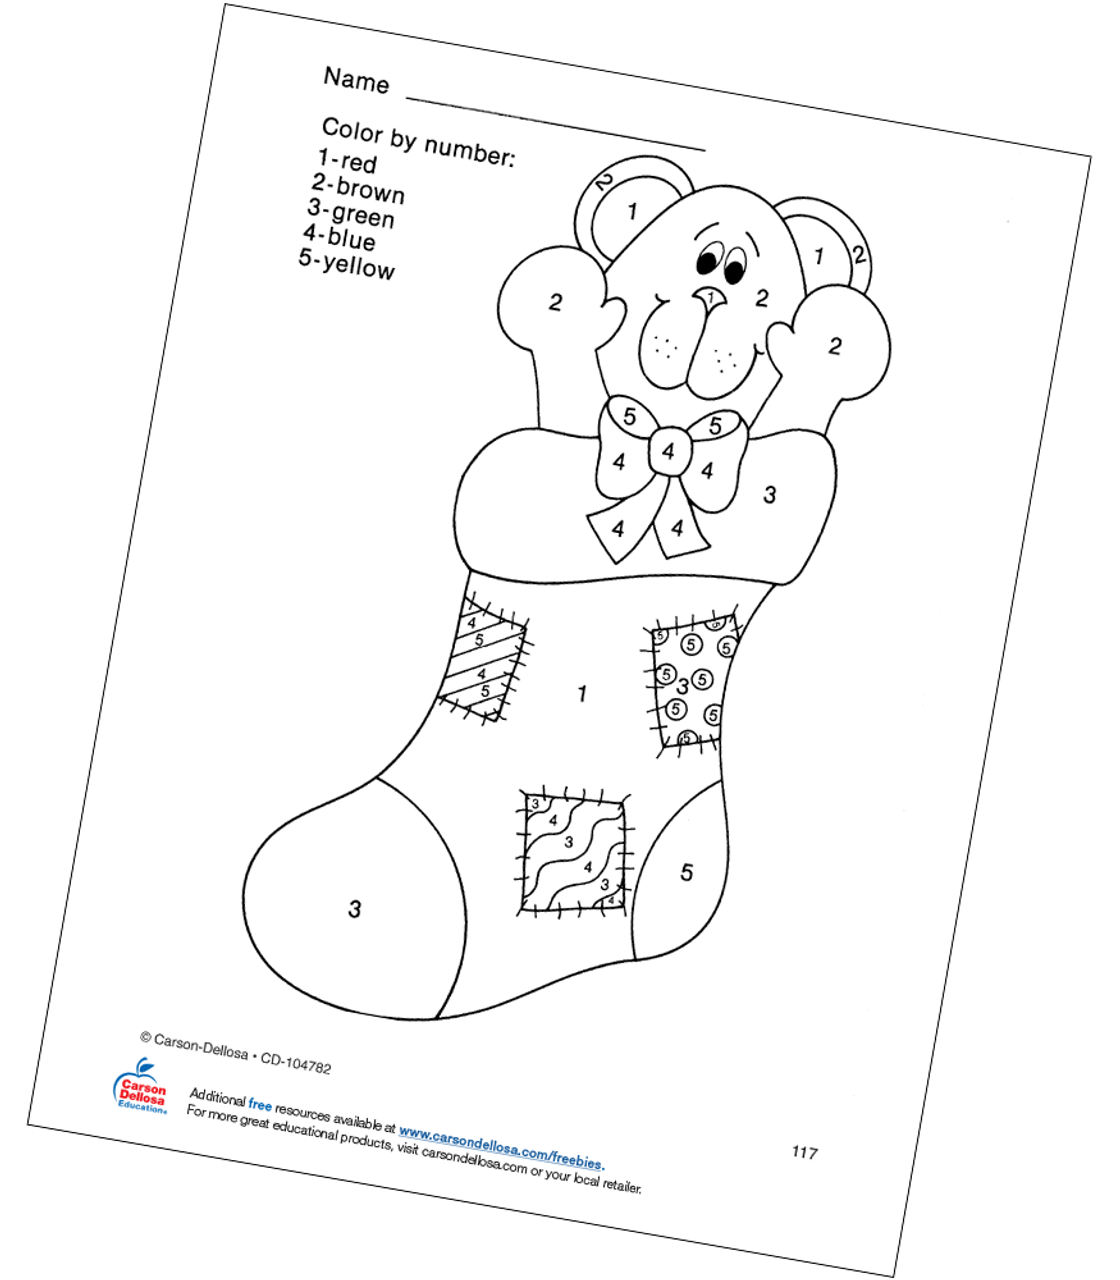 Christmas Stocking Color By Number Grades Pk 1 Free Printable Carson Dellosa